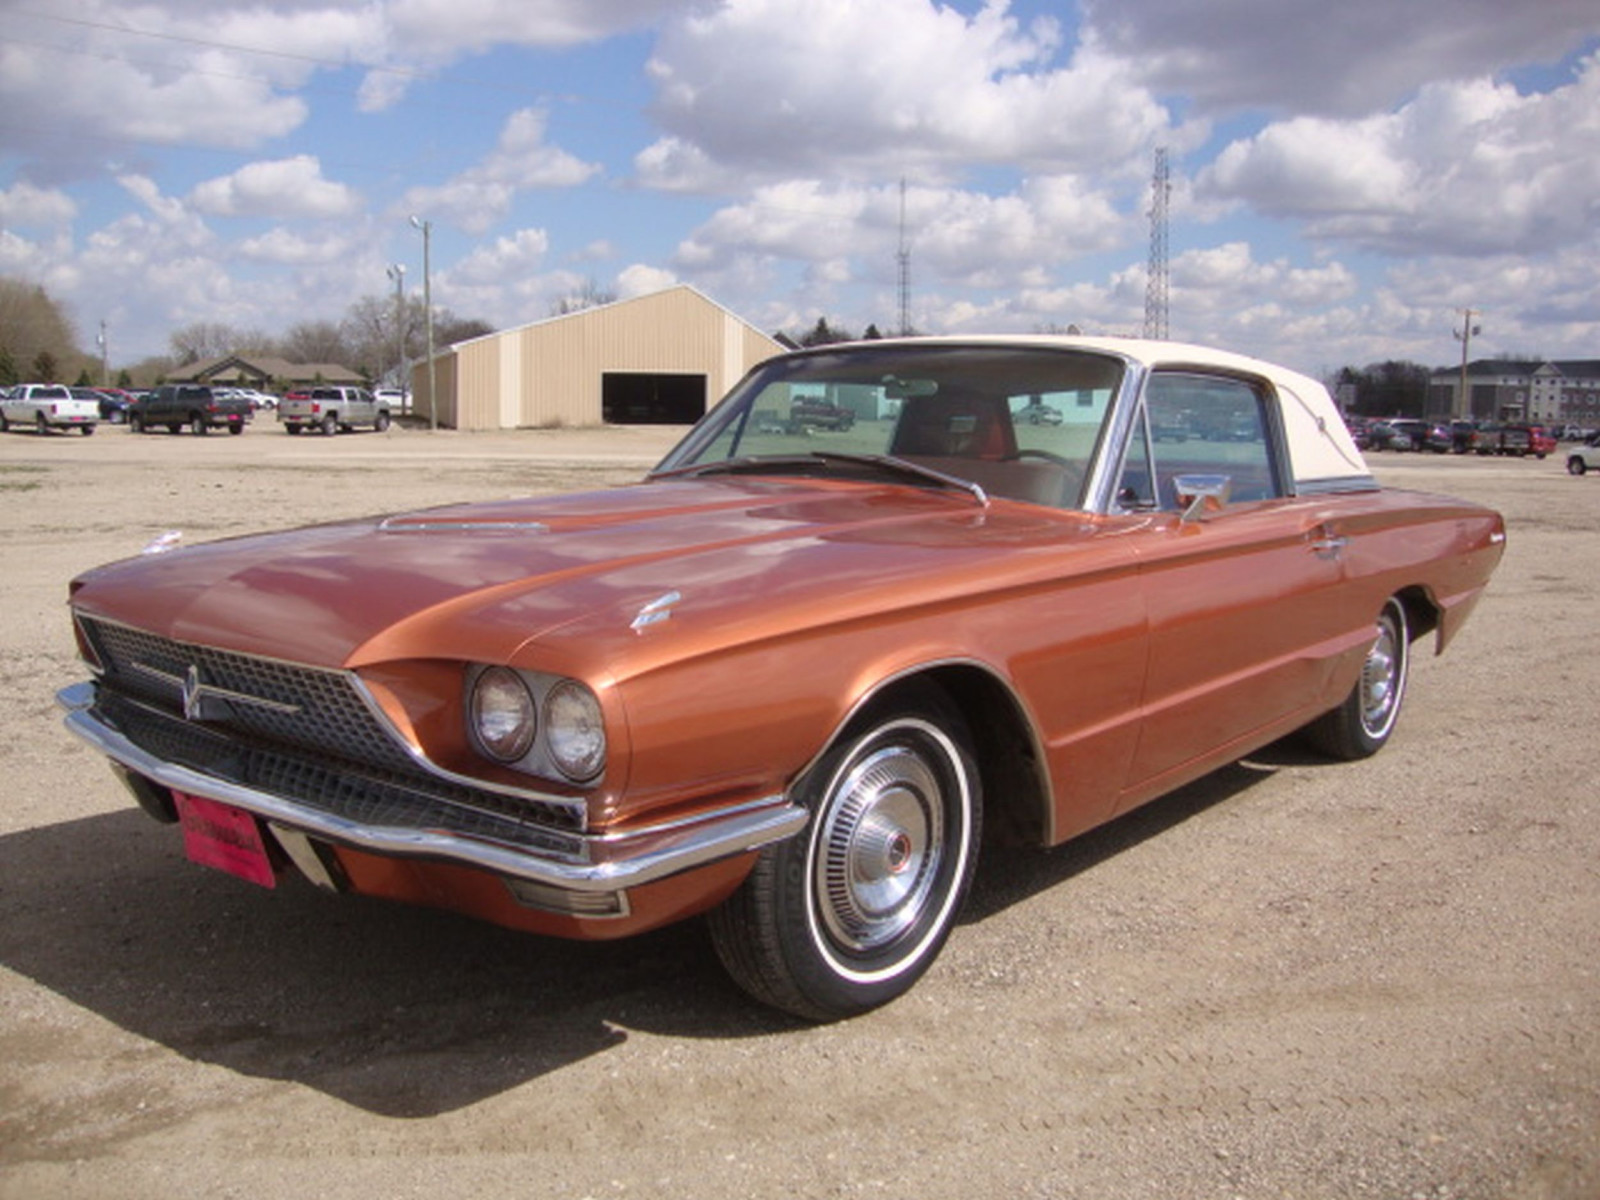 1966 Ford Thunderbird Coupe - Image 1